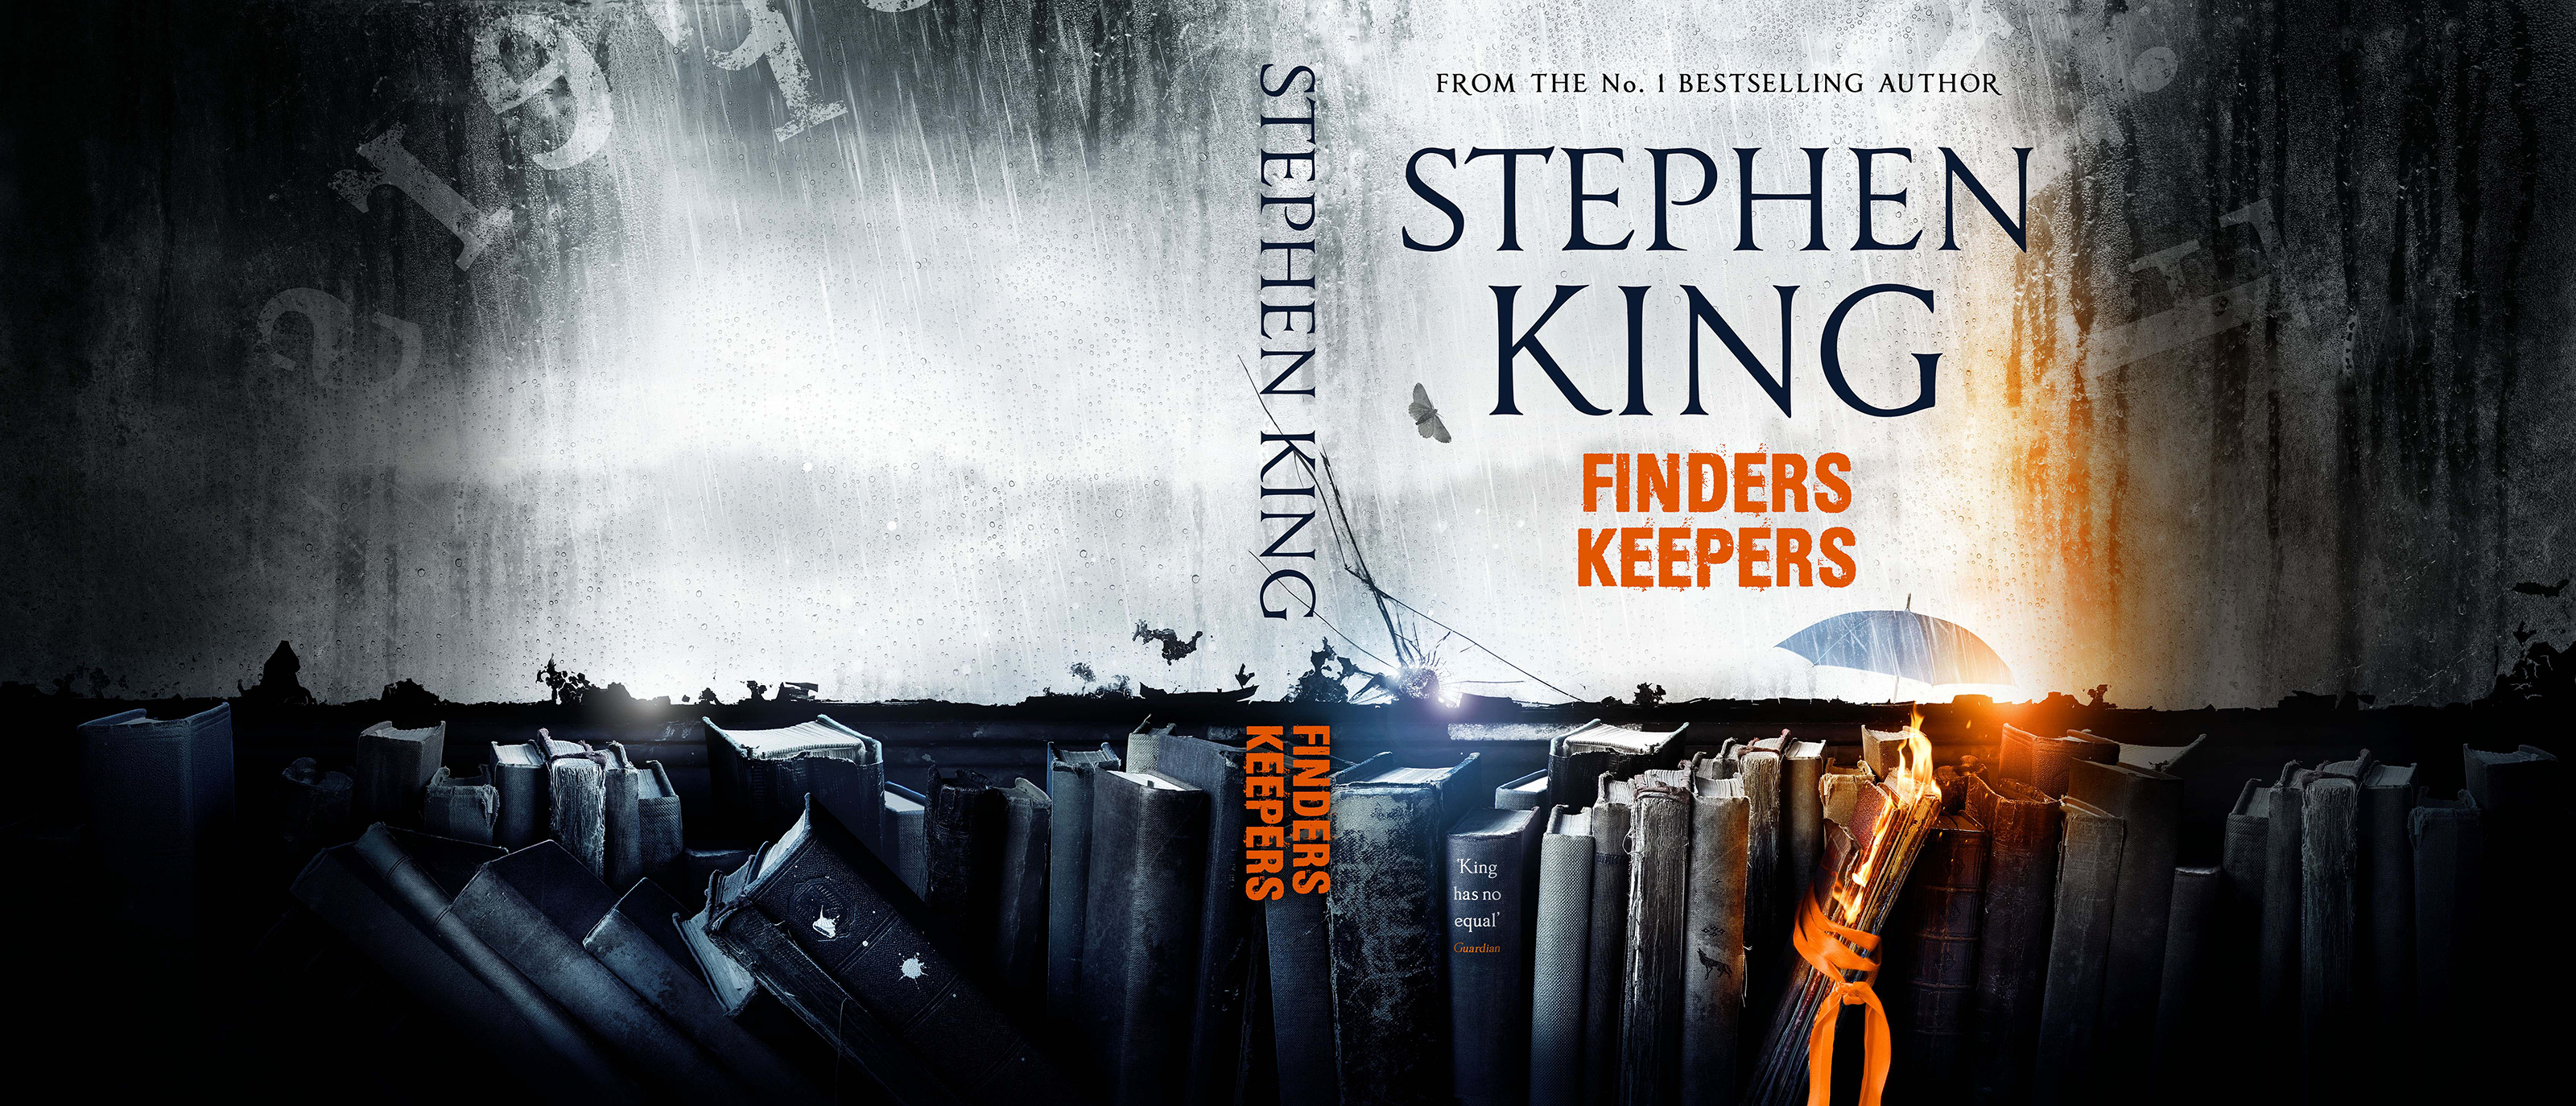 Stephen King's UK FINDERS KEEPERS cover | Hodderscape